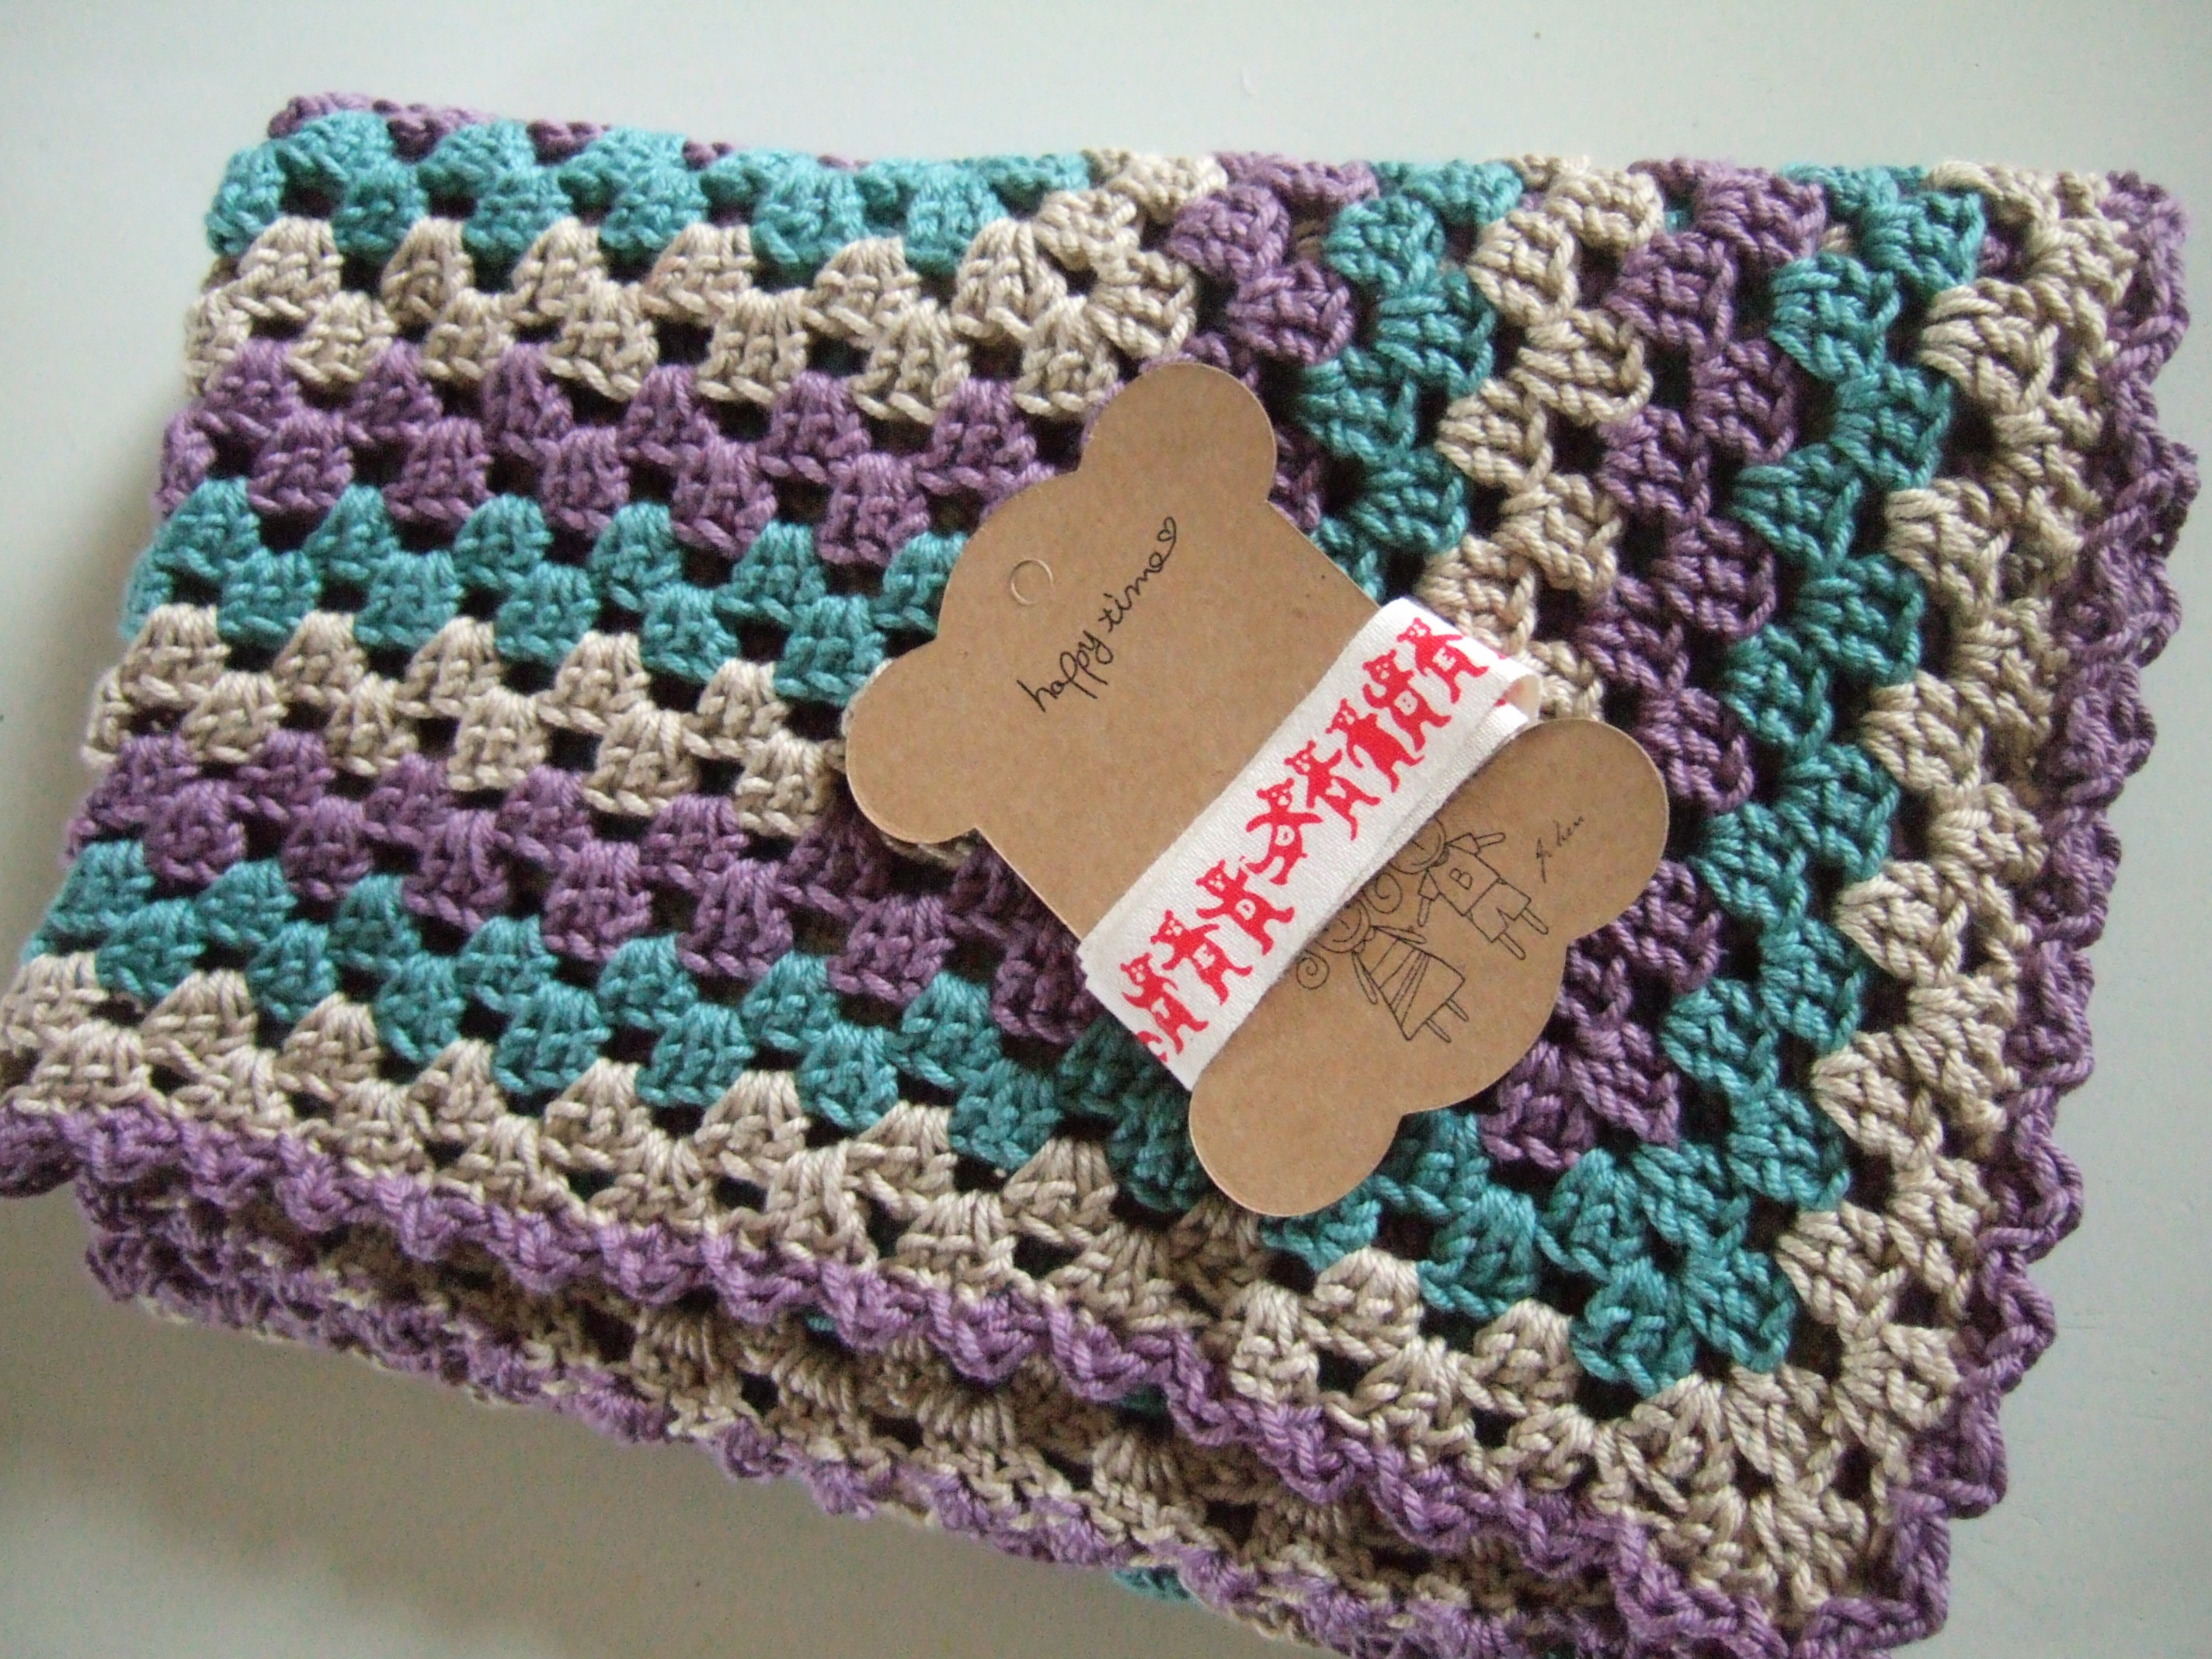 Lovely Easy Crochet Blanket – Crochet Club Easiest Crochet Blanket Of New 50 Images Easiest Crochet Blanket